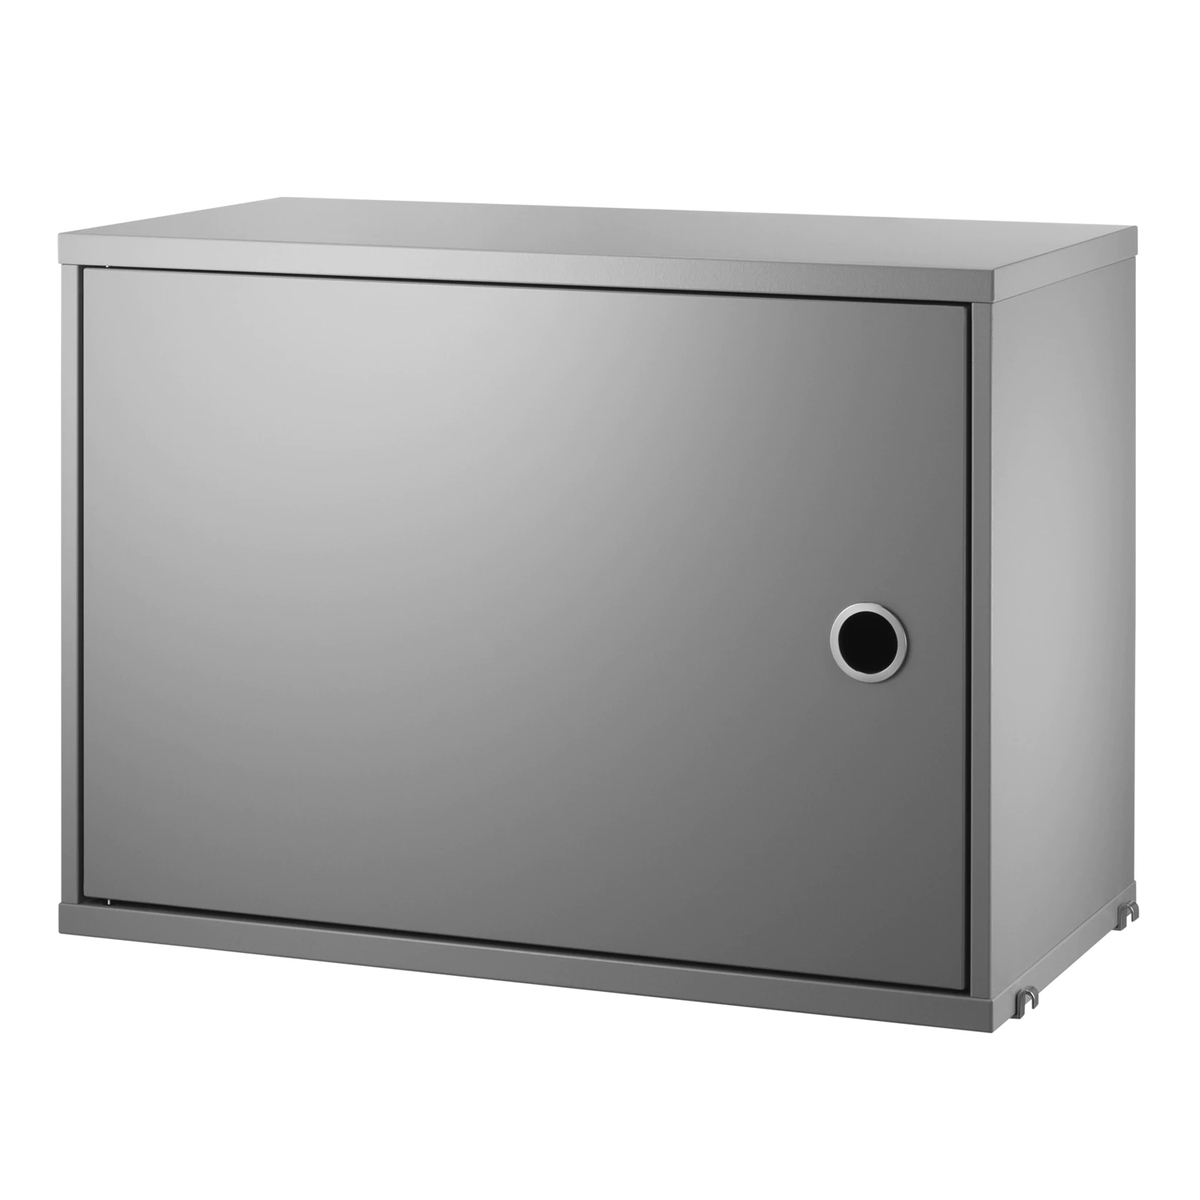 String Furniture String cabinet with swing door, 58 x 30 cm, grey from String Furniture